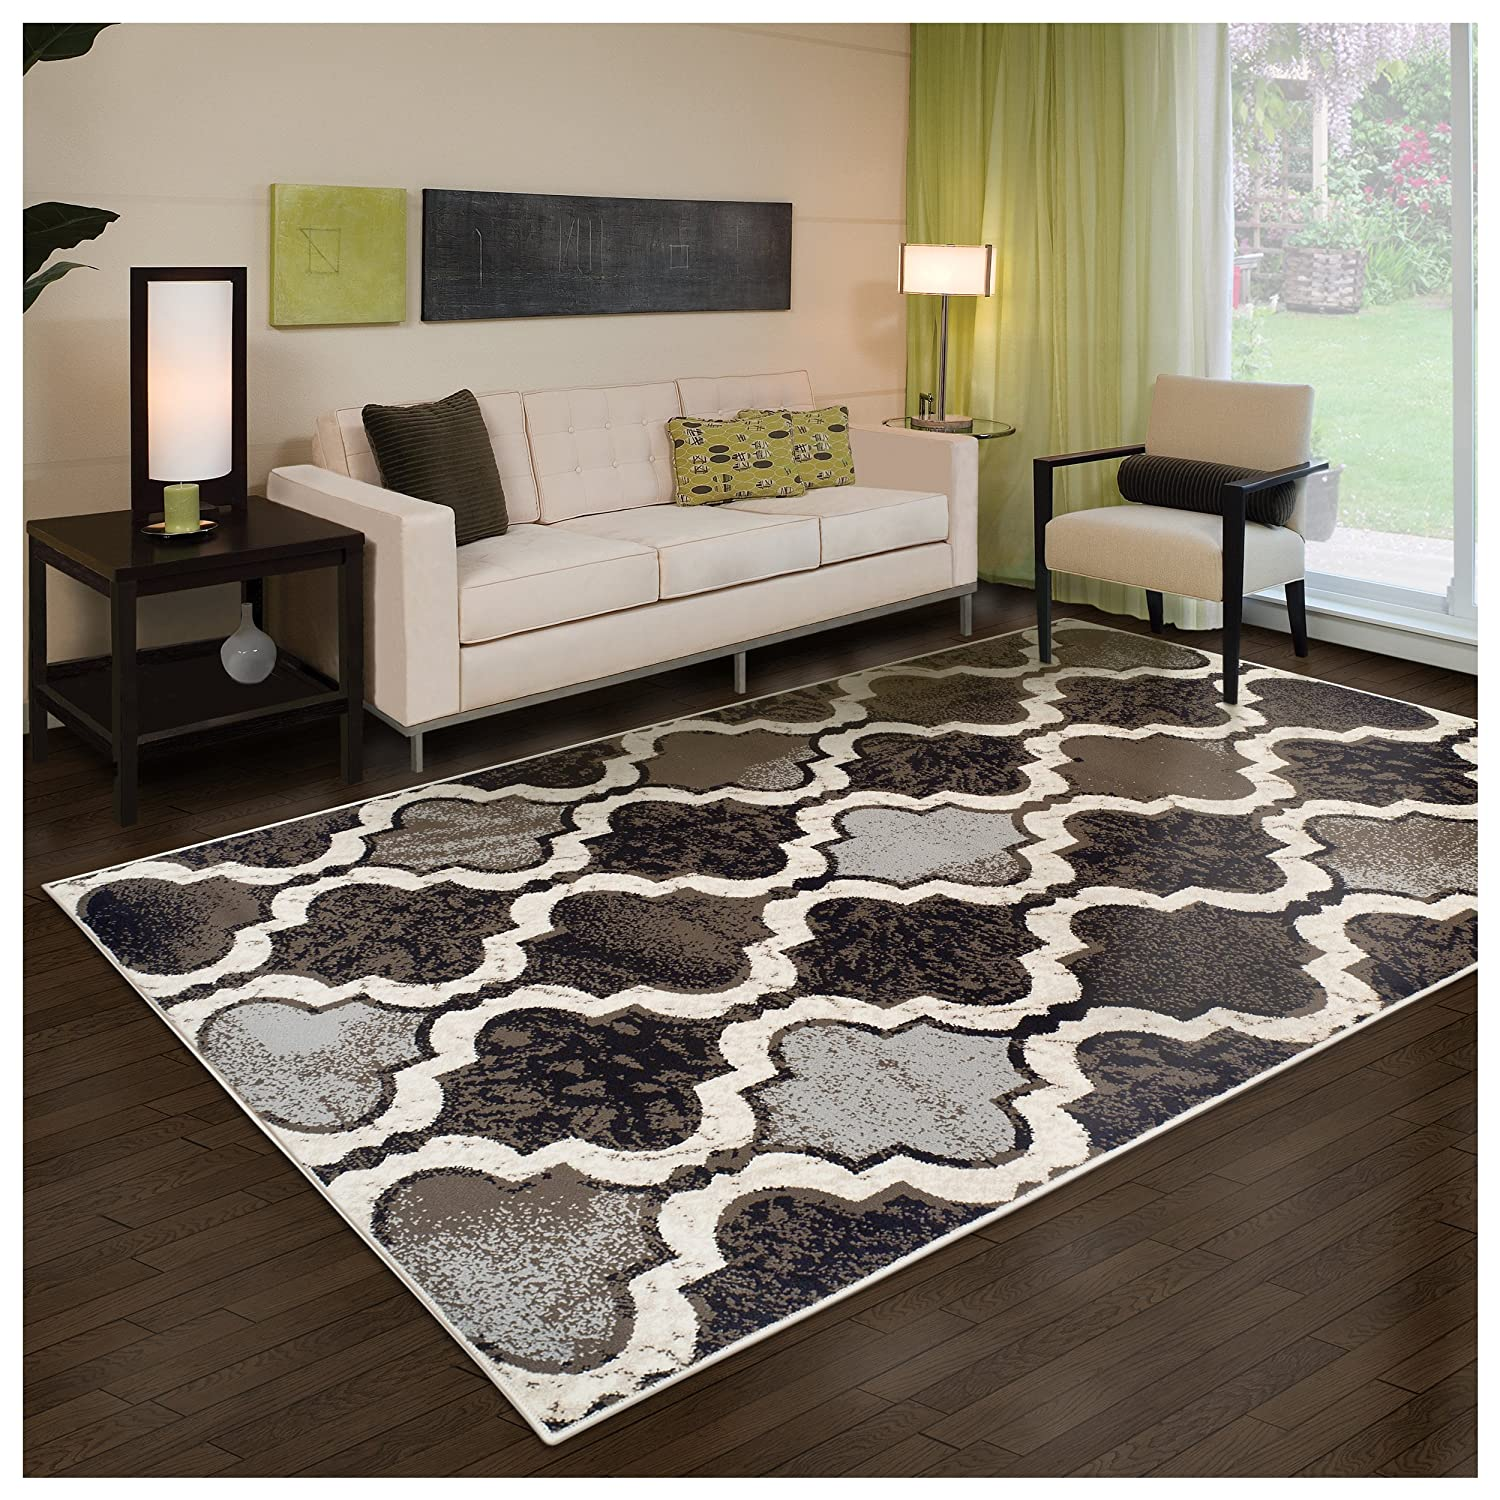 Superior Modern Viking Collection Area Rug, 8mm Pile Height with Jute Backing